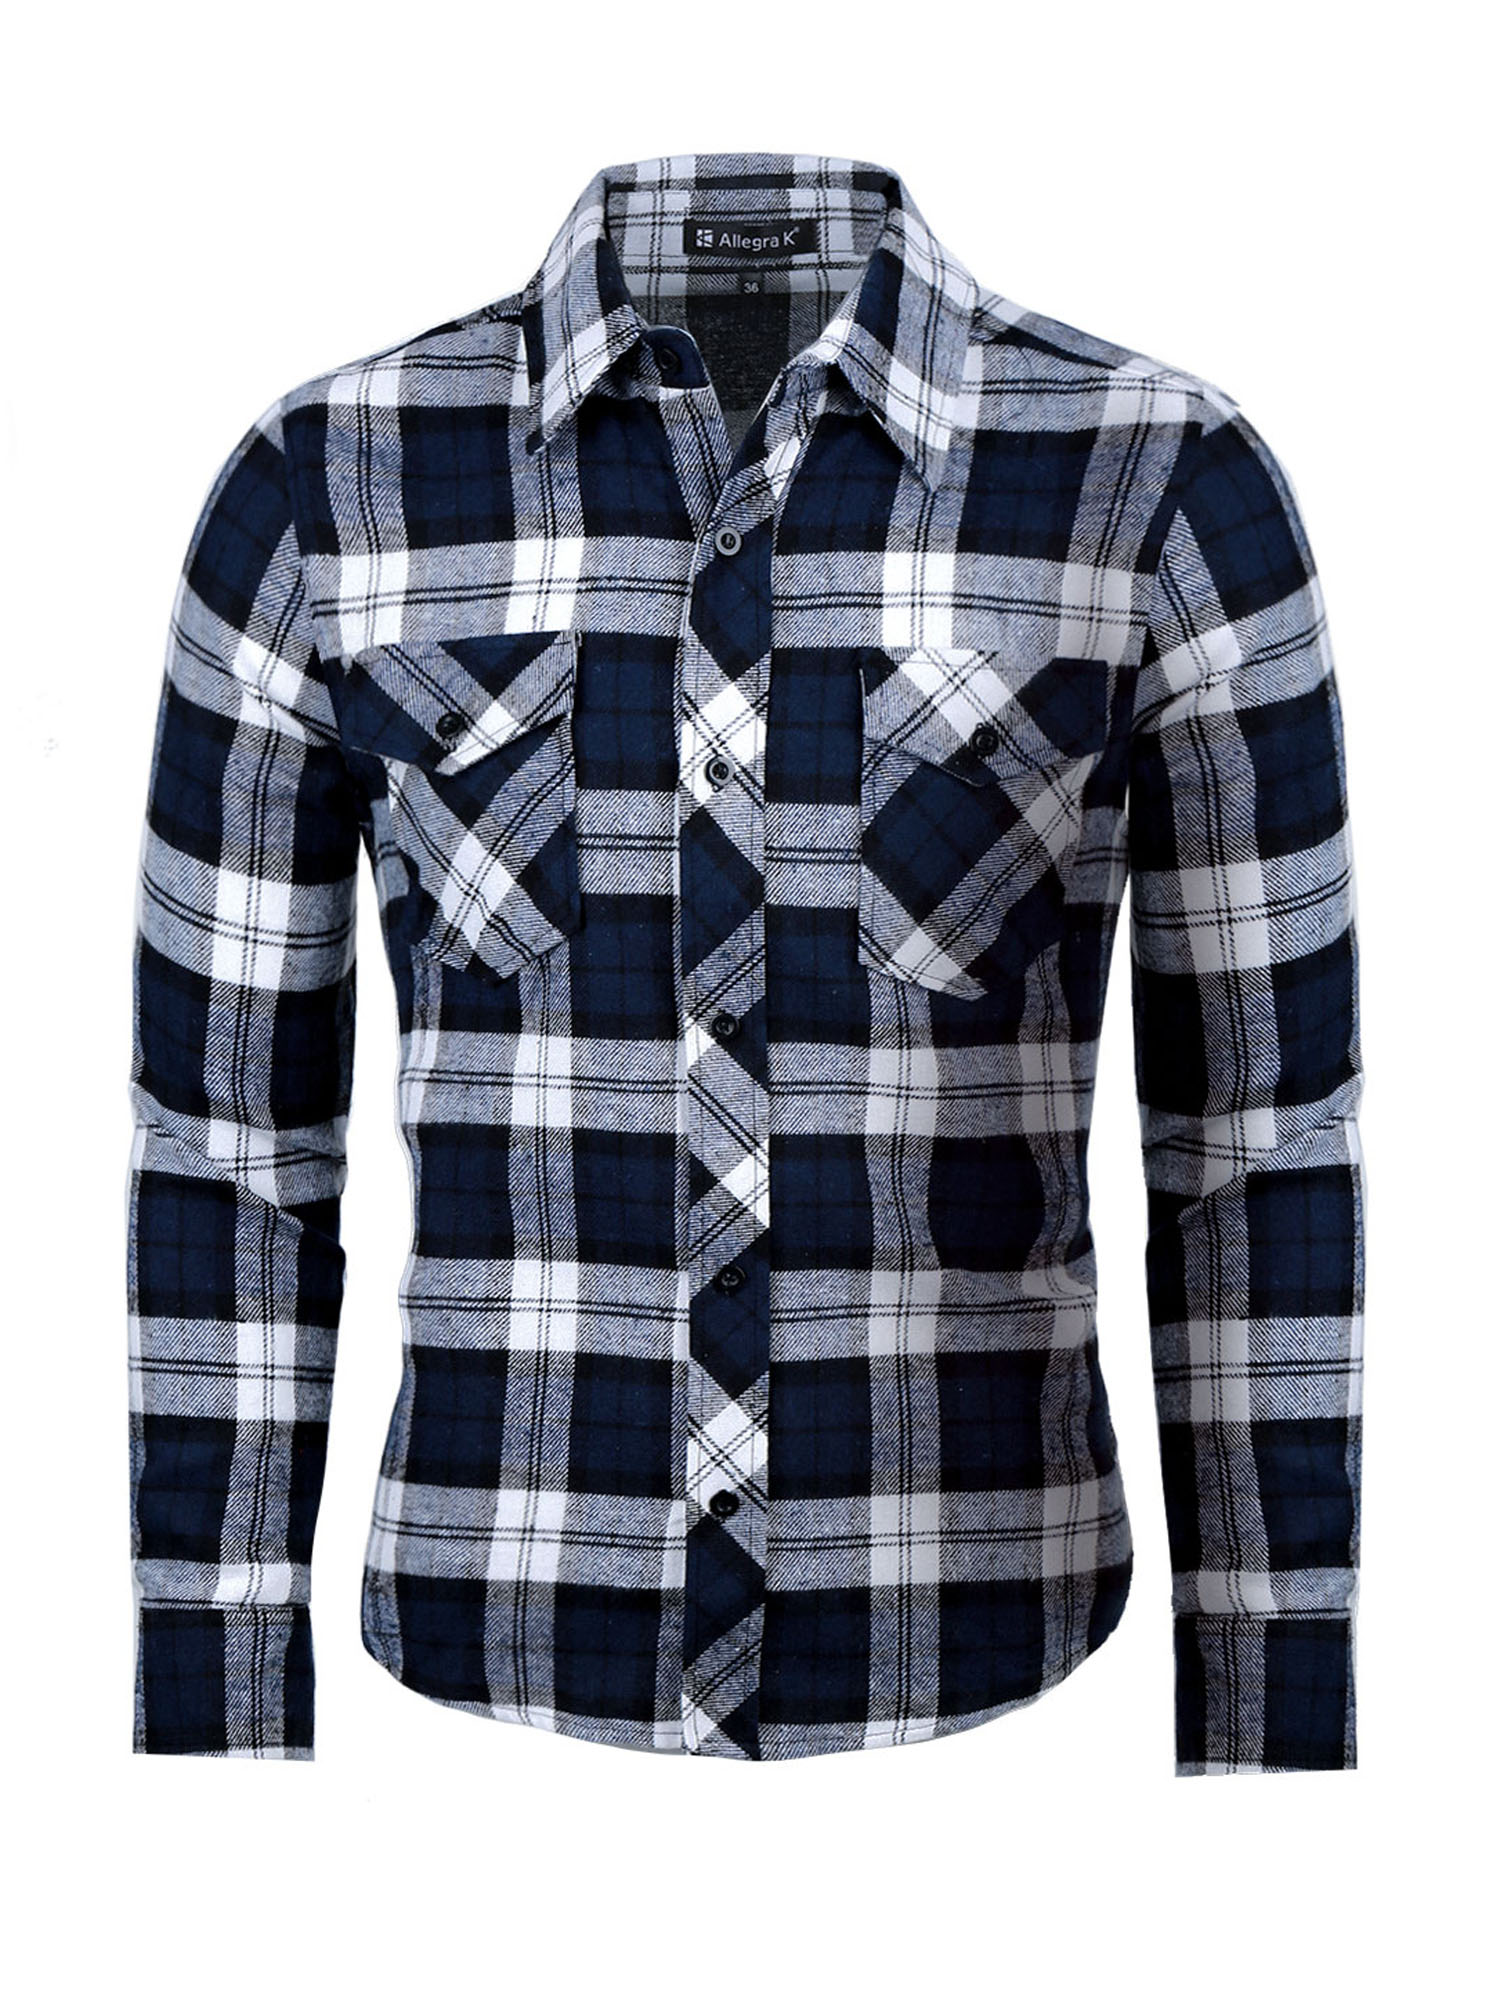 uxcell Men Plaid Point Collar Chest Pockets Short Sleeves Button up Checkered Shirt